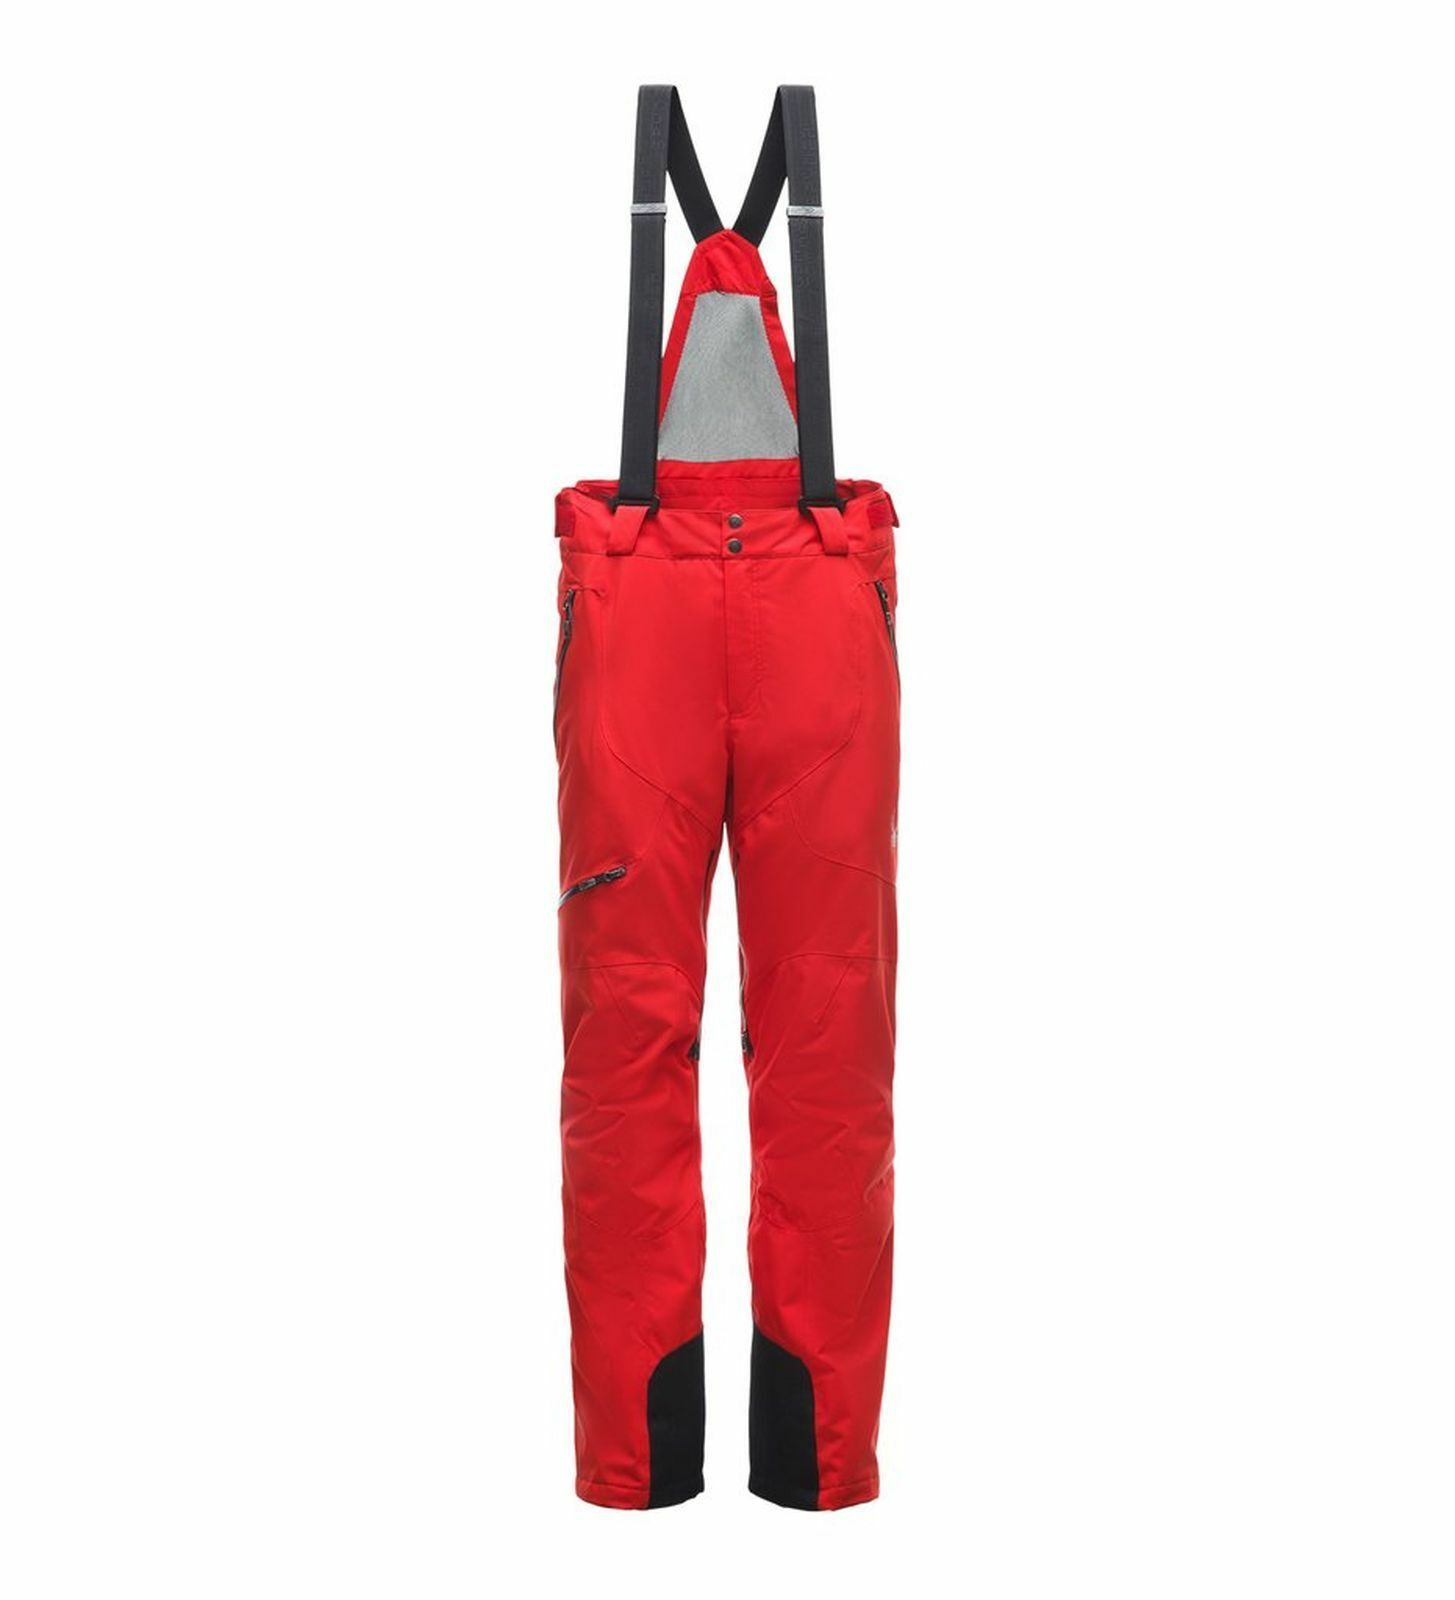 Spyder Men's Goretex Ski Pants Propulsion GTX Pant Red